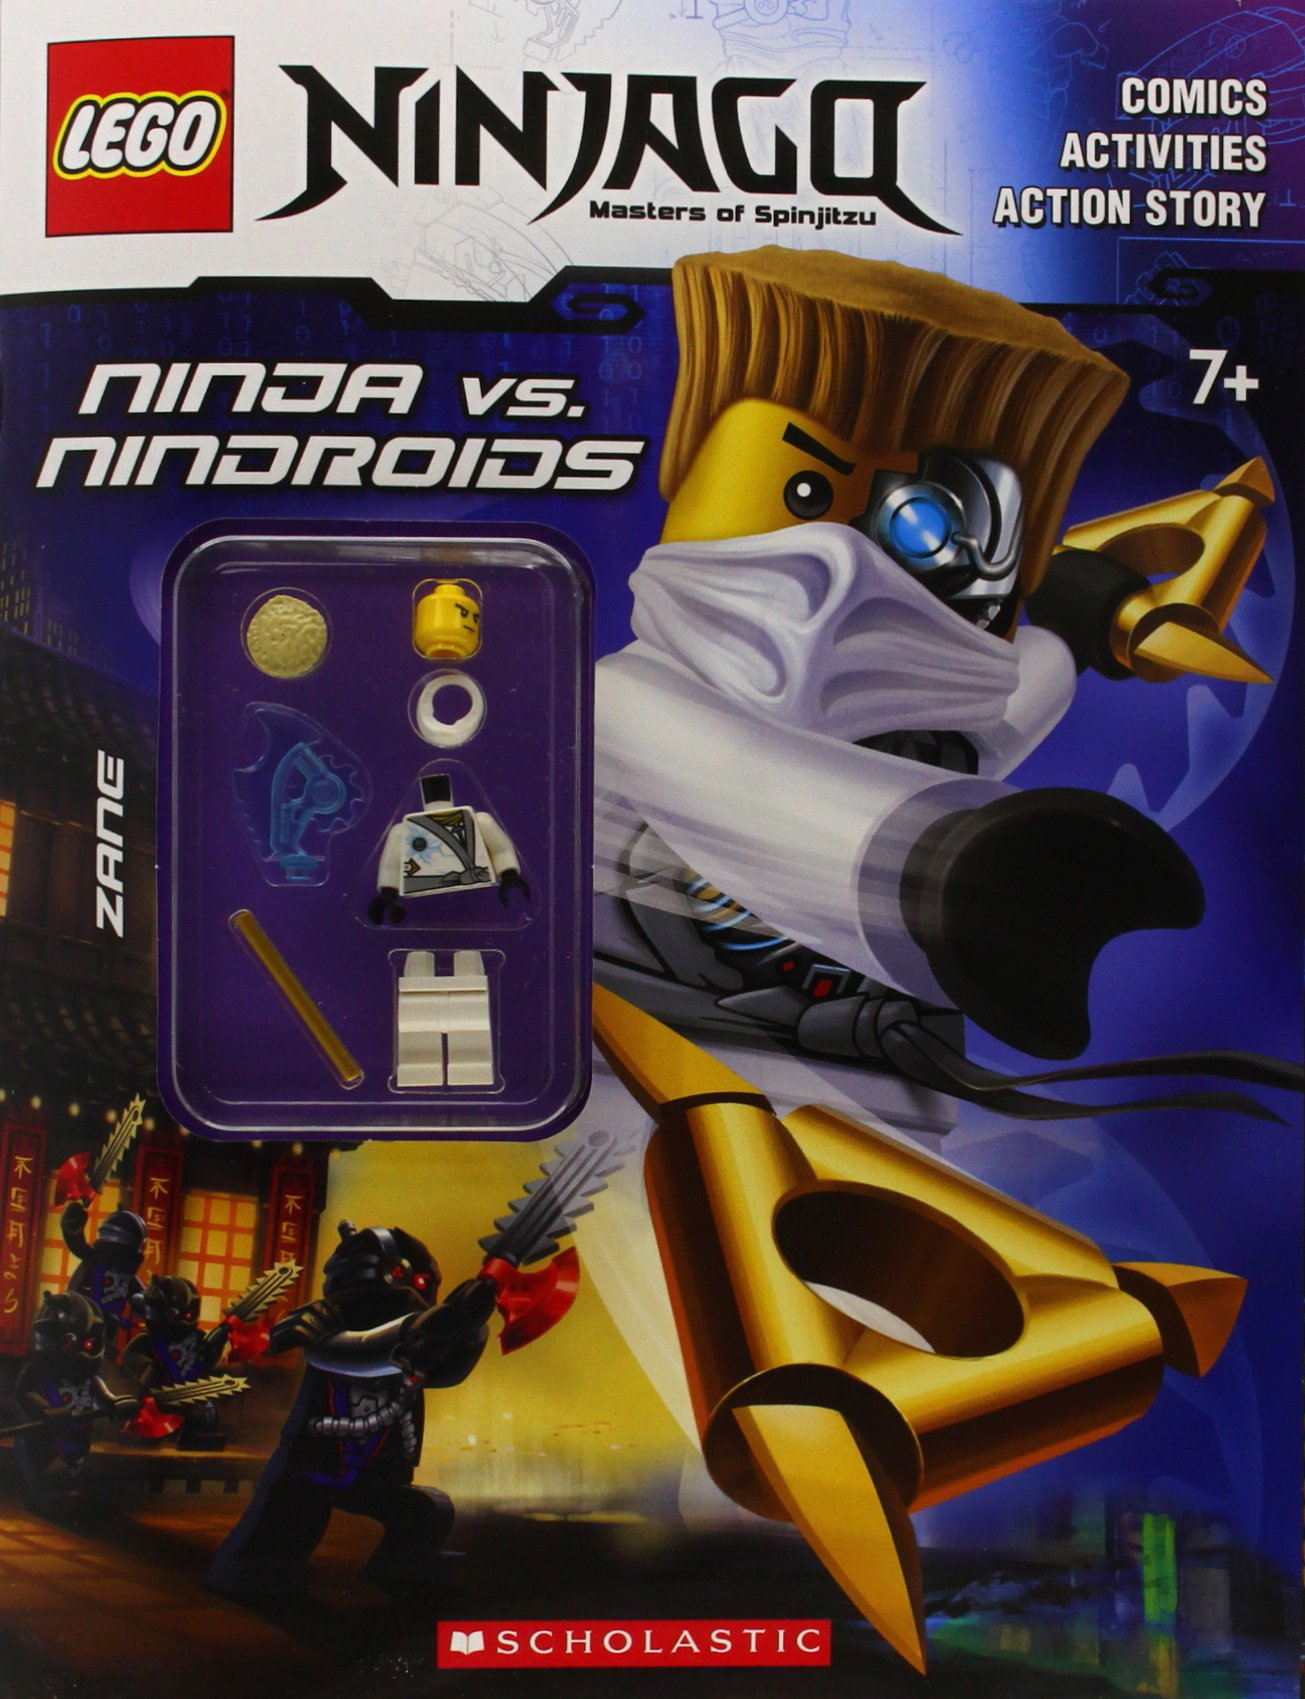 Lego ninjago activities gallery - Ninjago vs ninjago ...